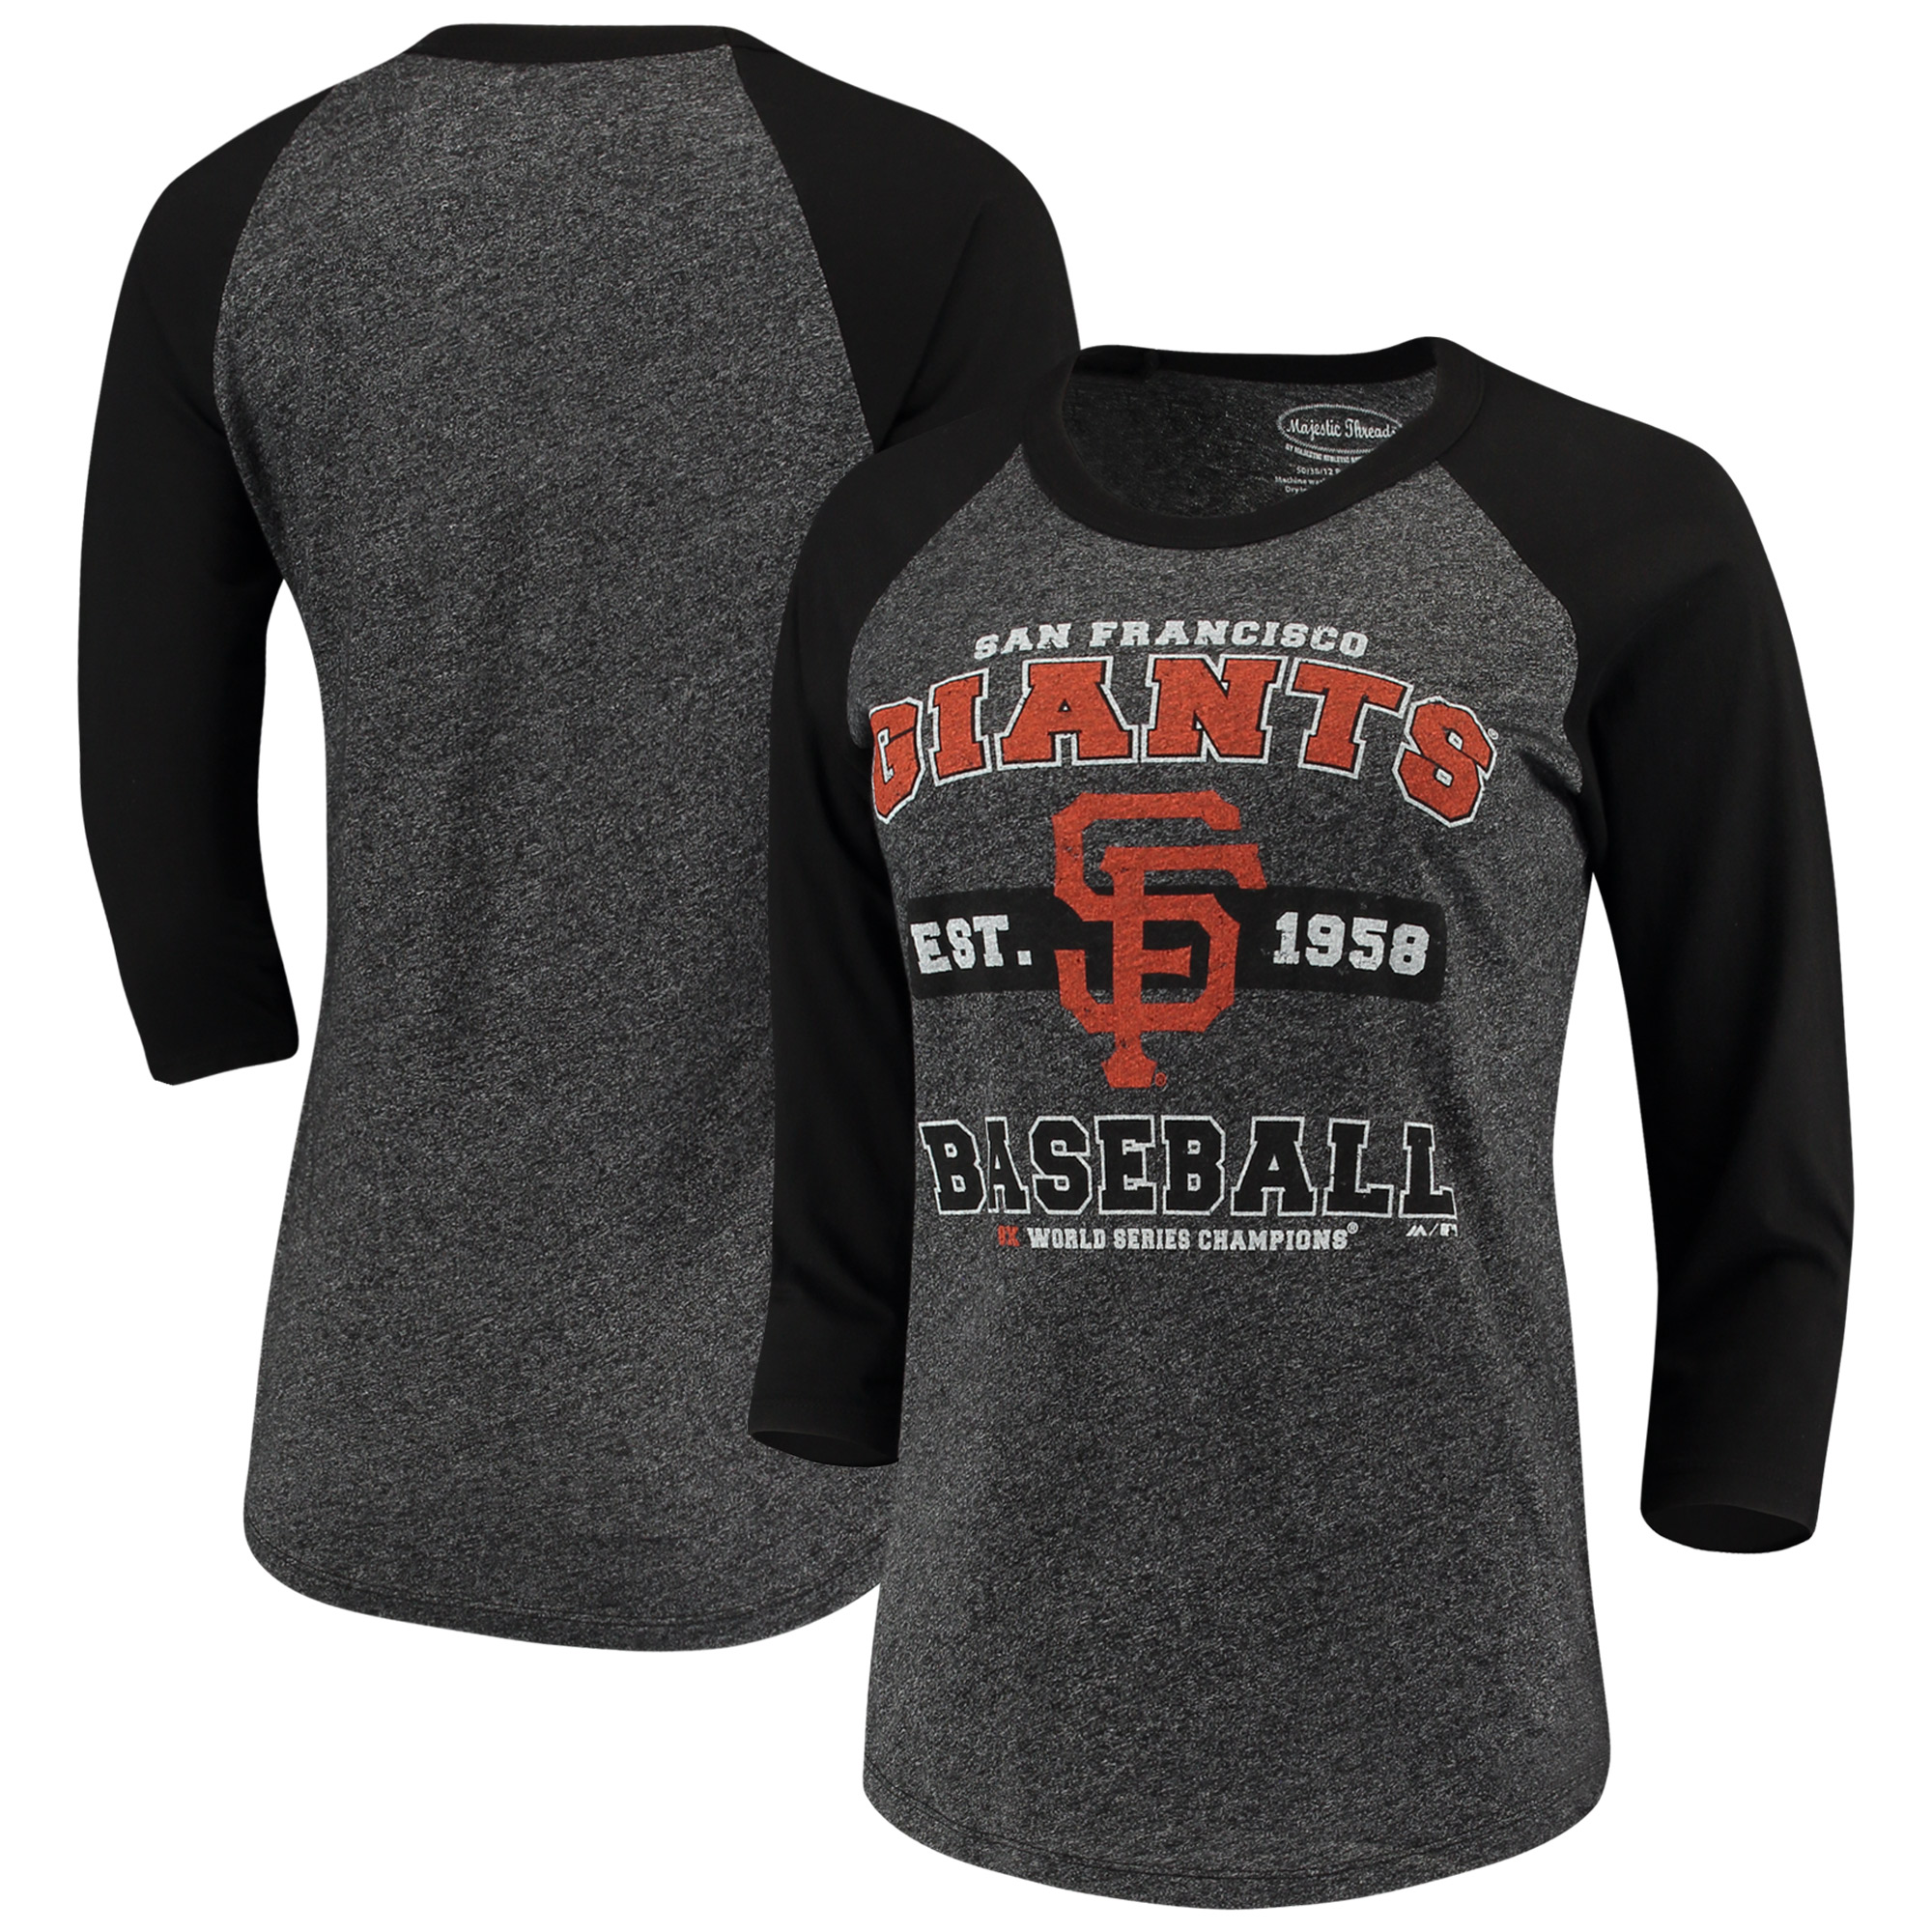 San Francisco Giants Majestic Threads Women's Tri-Blend 3/4-Sleeve Raglan T-Shirt - Black